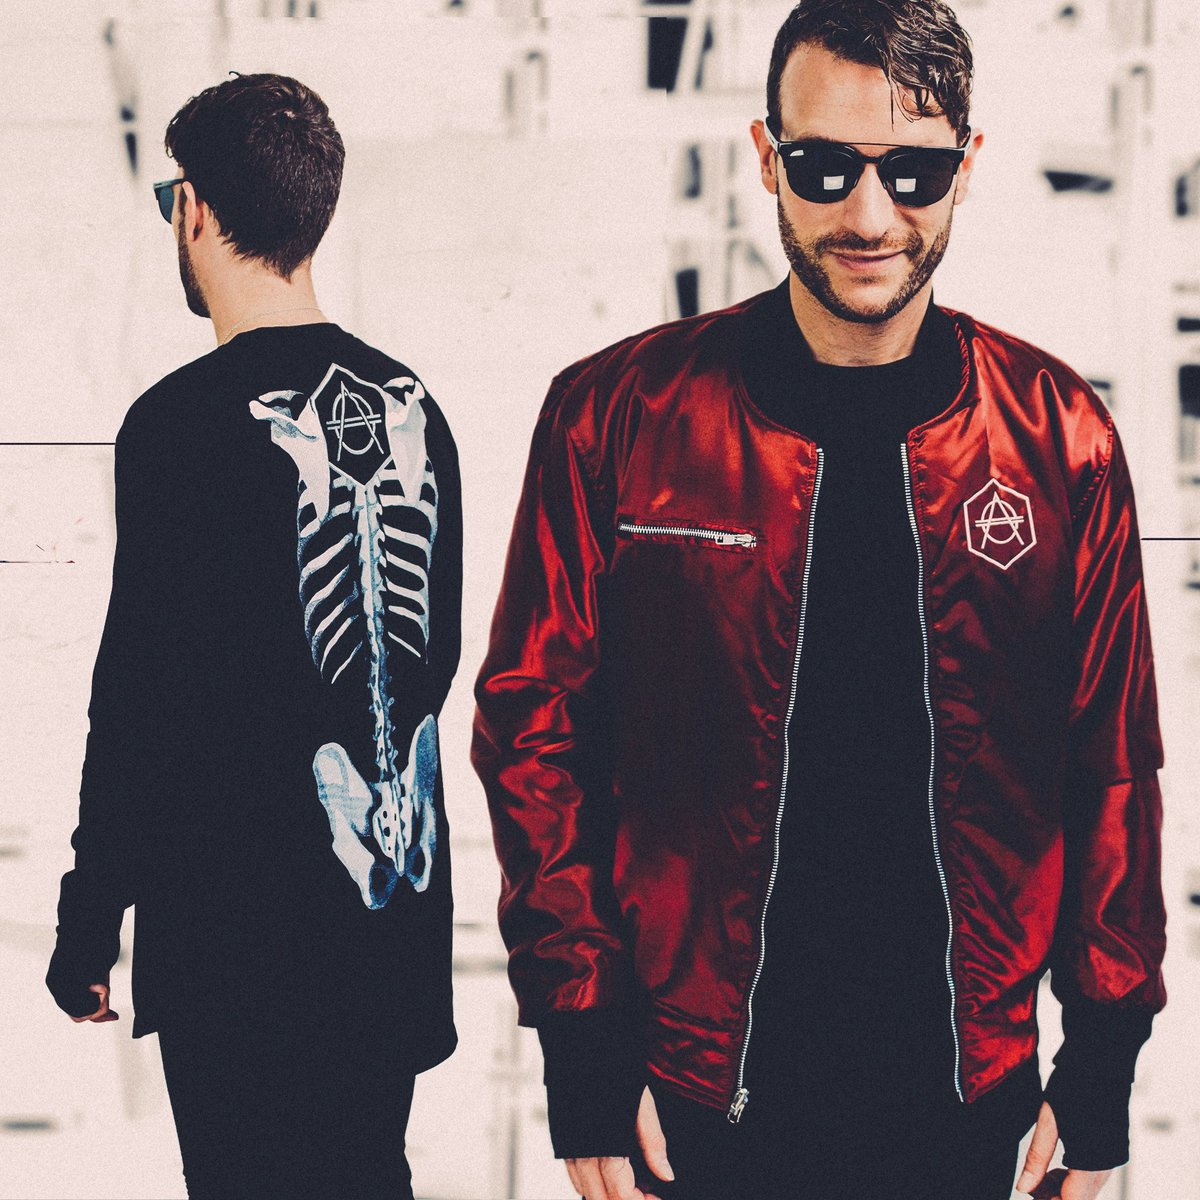 Don Diablo On Twitter Just Designed New Bombers Shirts More